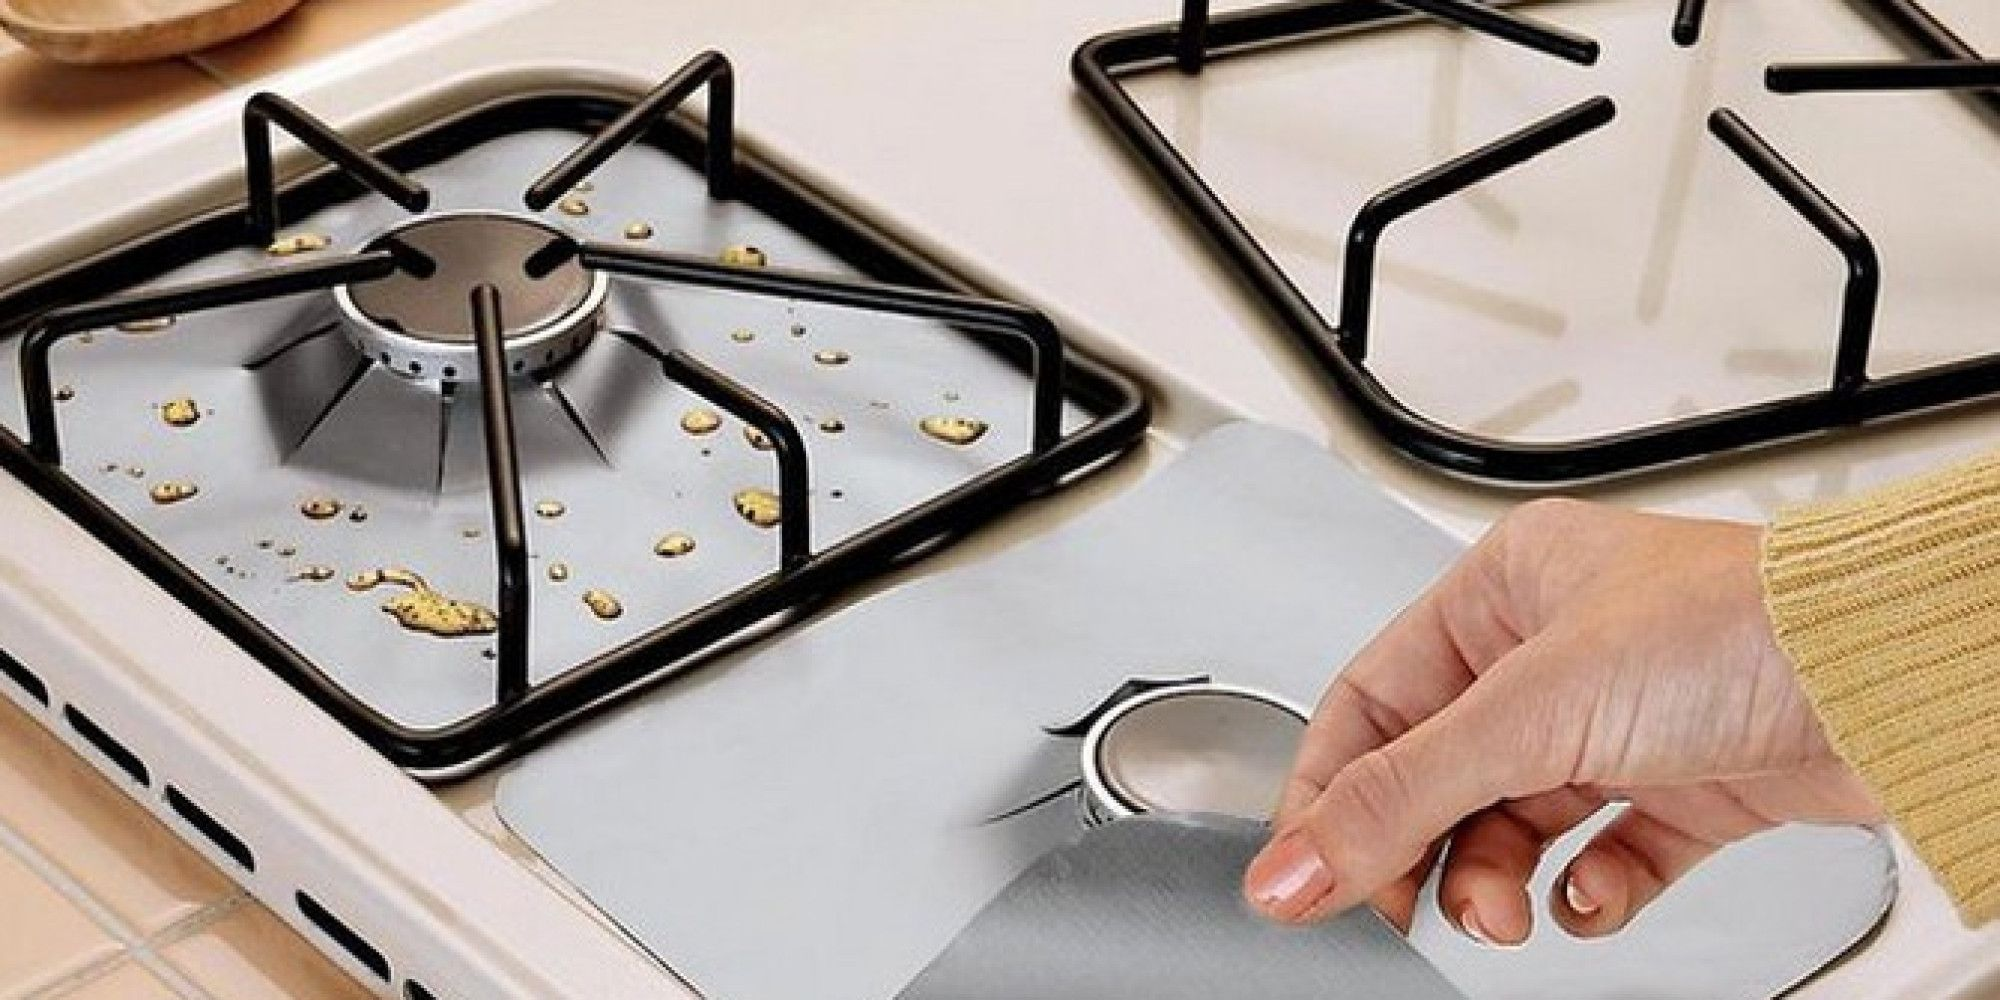 How To Get Scratches Out Of Stainless Steel Hob